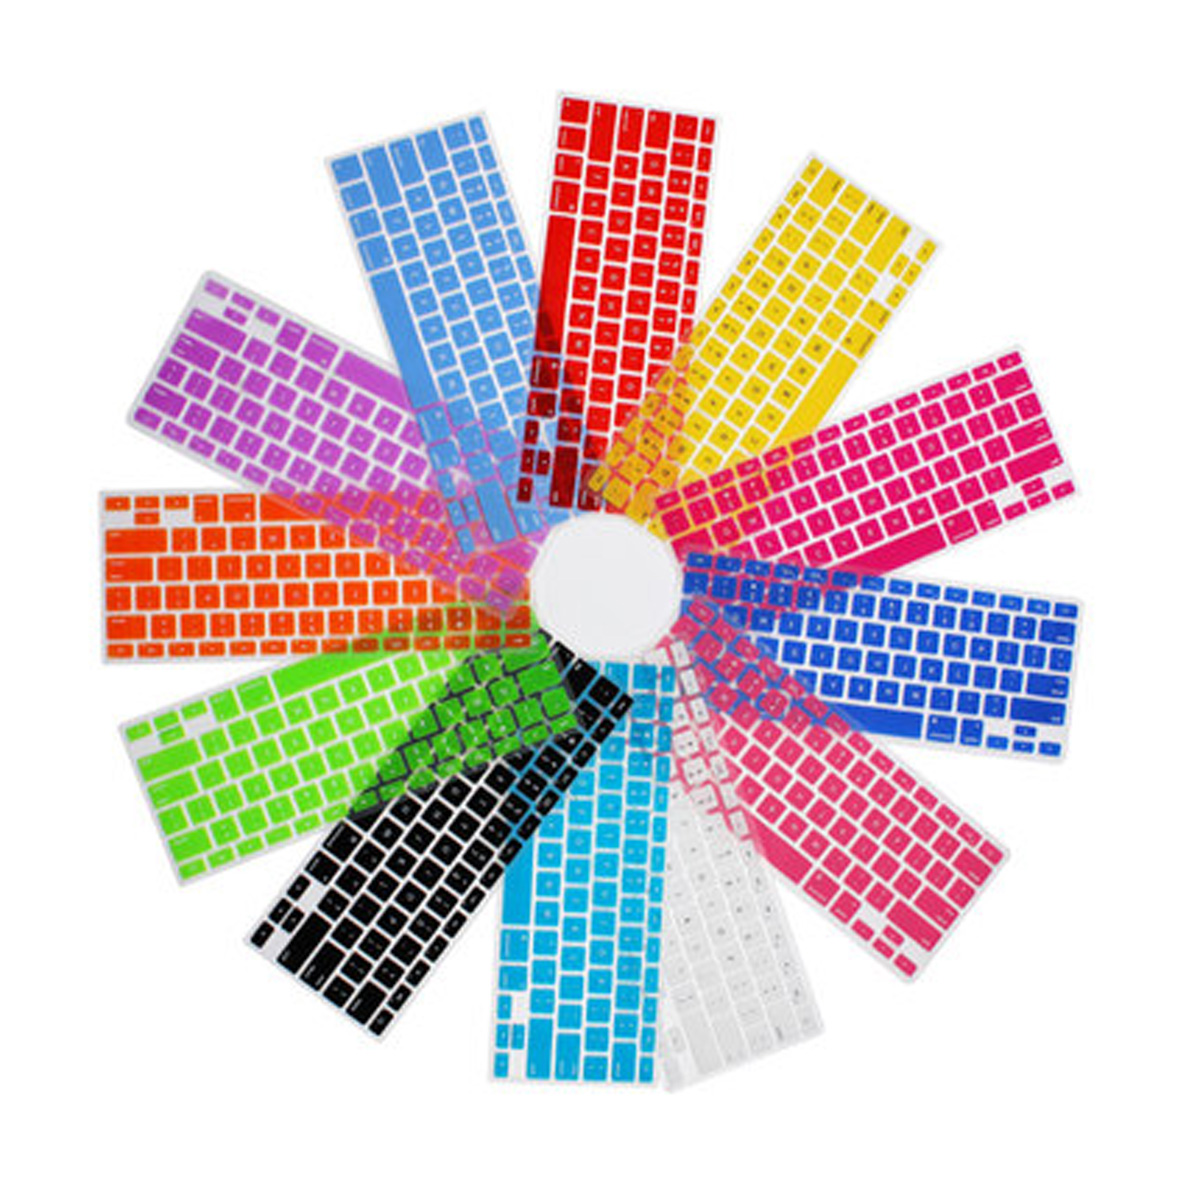 freeship EU/UK Layout English Colorful Silicone Protection <font><b>sticker</b></font> <font><b>Keyboard</b></font> Skin for 12' inch apple <font><b>Mac</b></font> Macbook/Macbook12 image